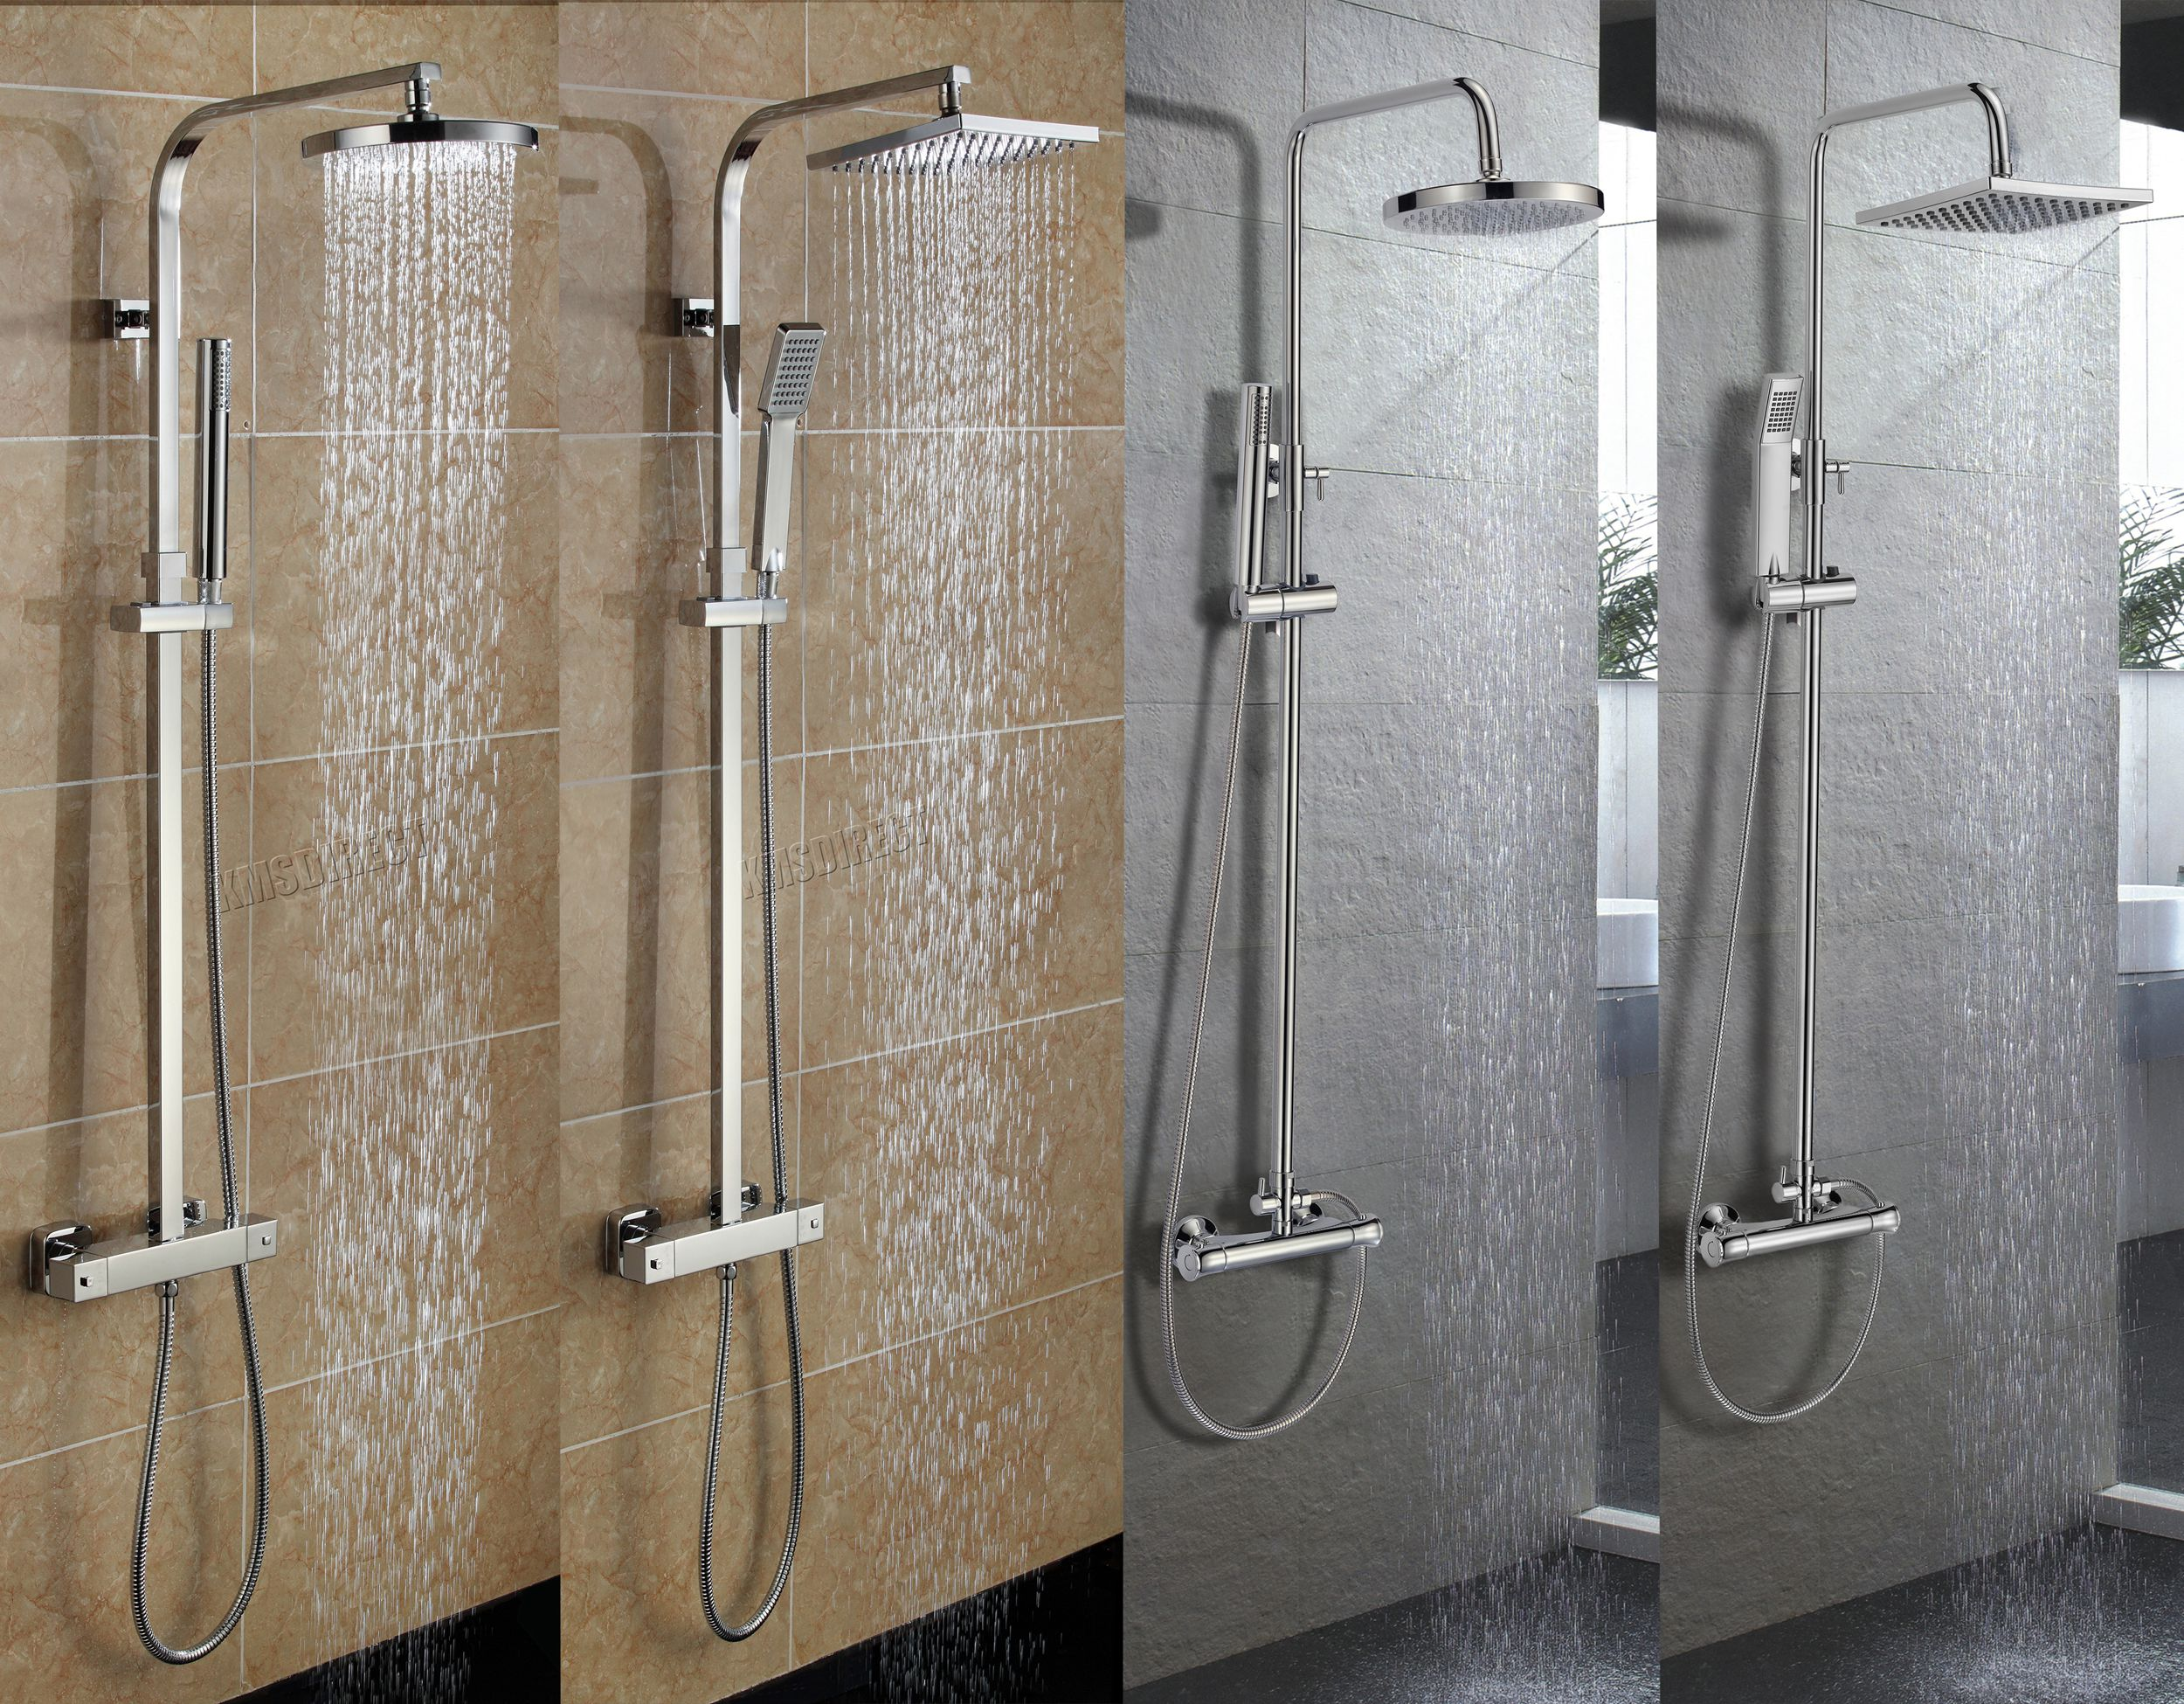 Bathroom Shower Sets Details About Foxhunter Bathroom Mixer Shower Set Twin Head Round Square Chrome Thermostatic